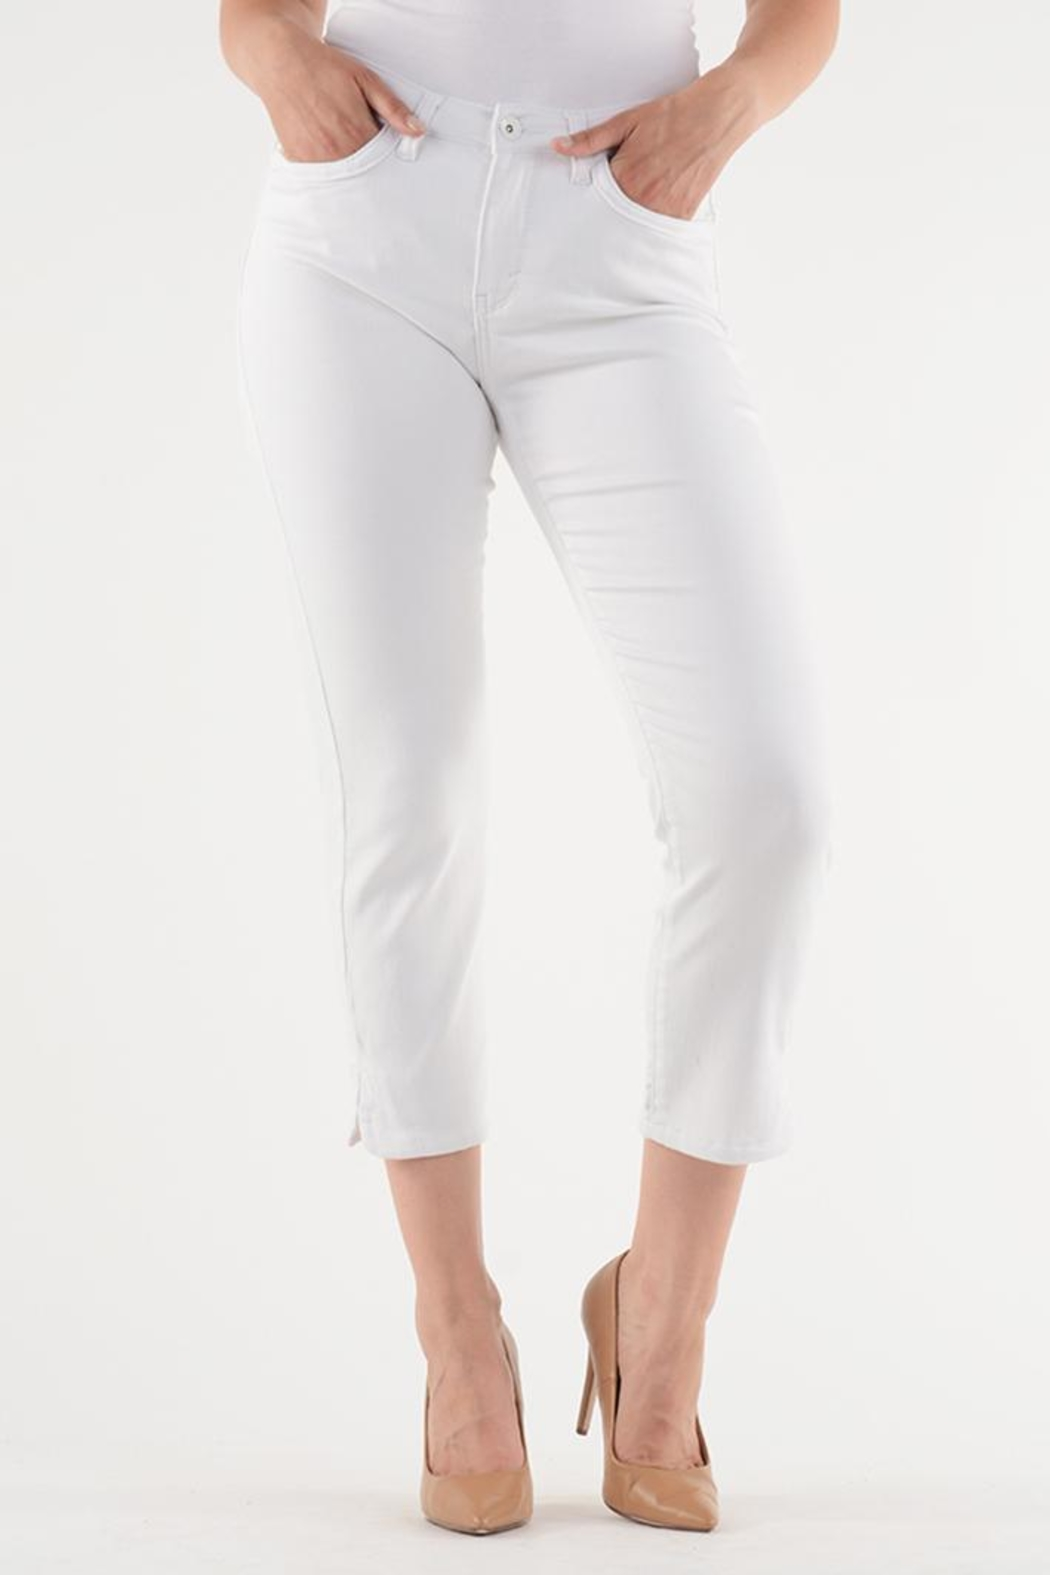 Lois Jeans White Ankle Jean from Canada by Didi s Boutique — Shoptiques 207416d72